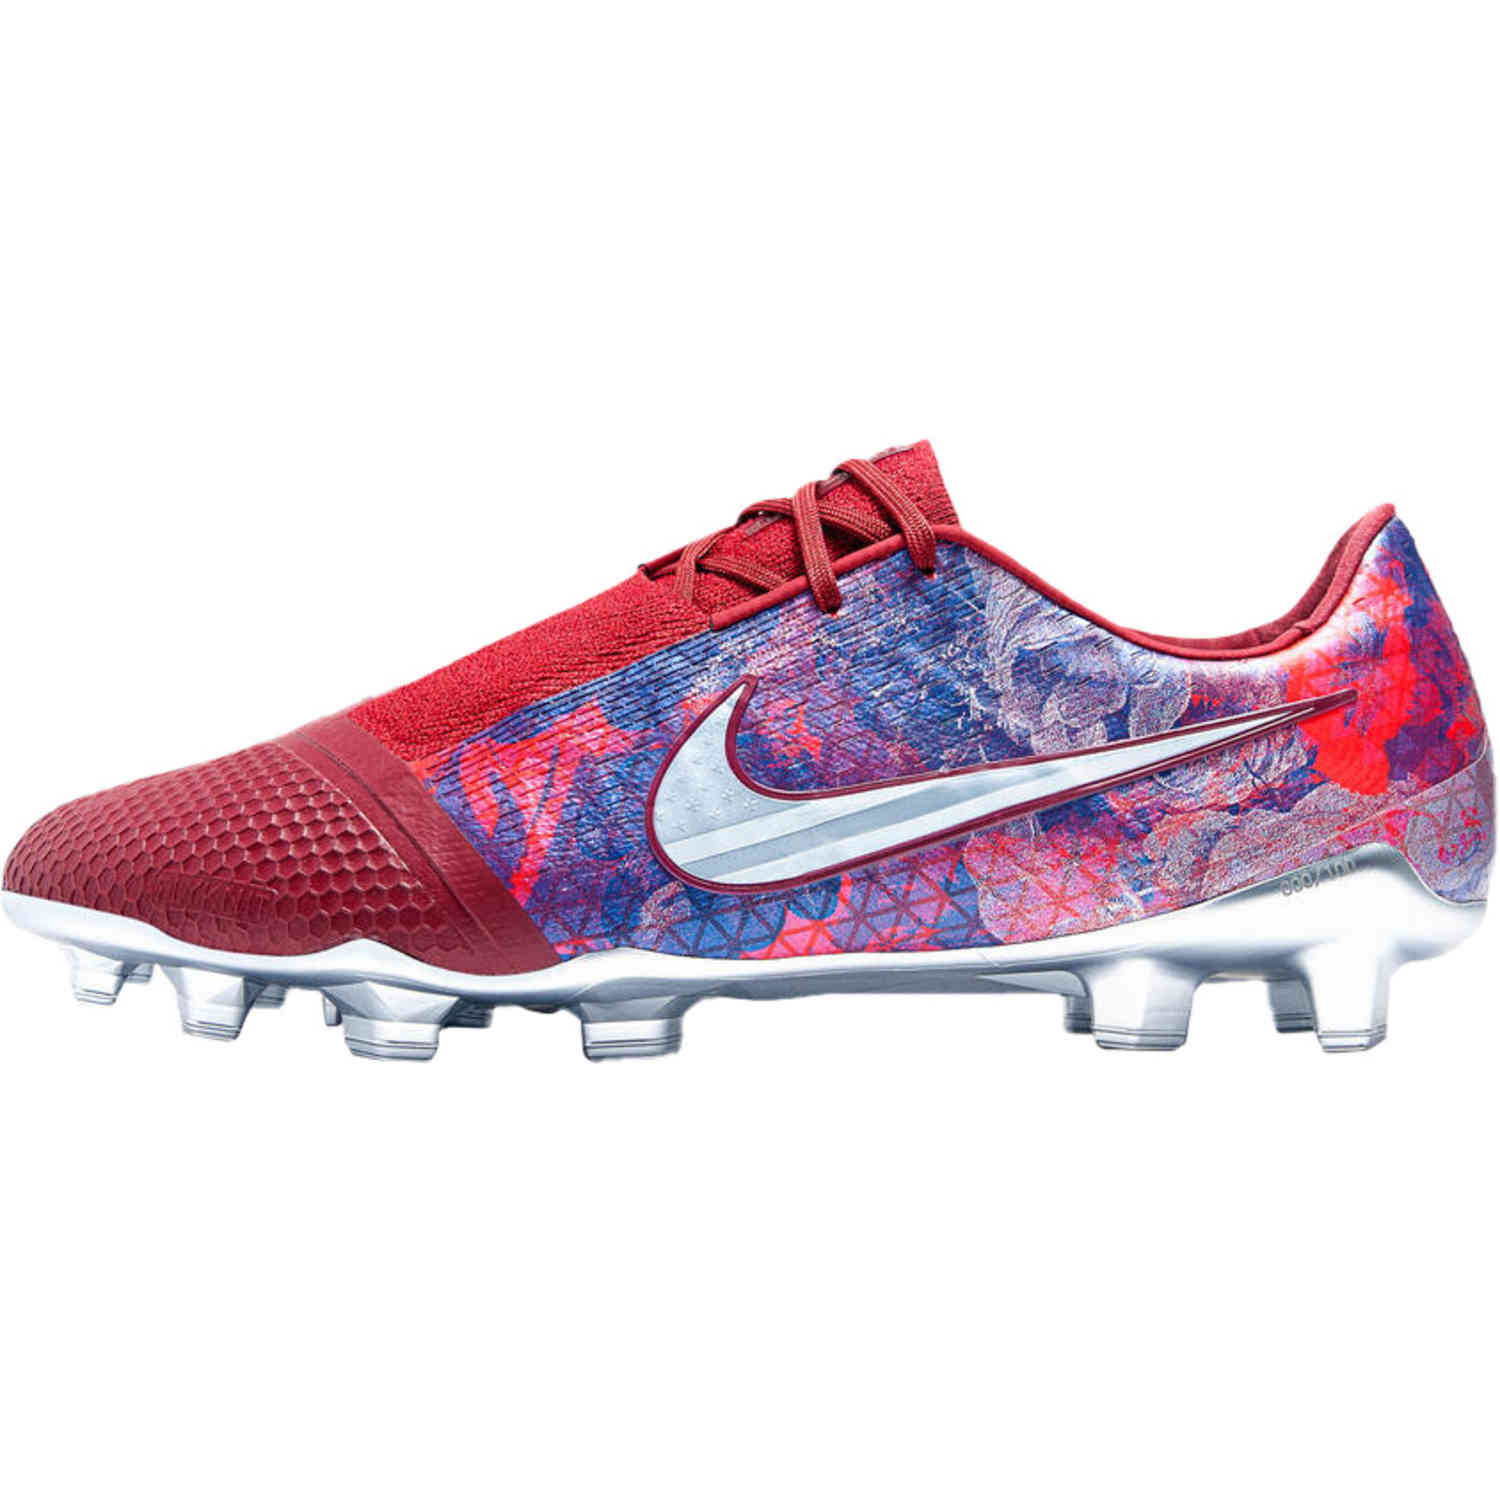 half off 6f414 4ebc9 Womens Nike Alex Morgan Phantom Venom Elite FG - Team Red ...